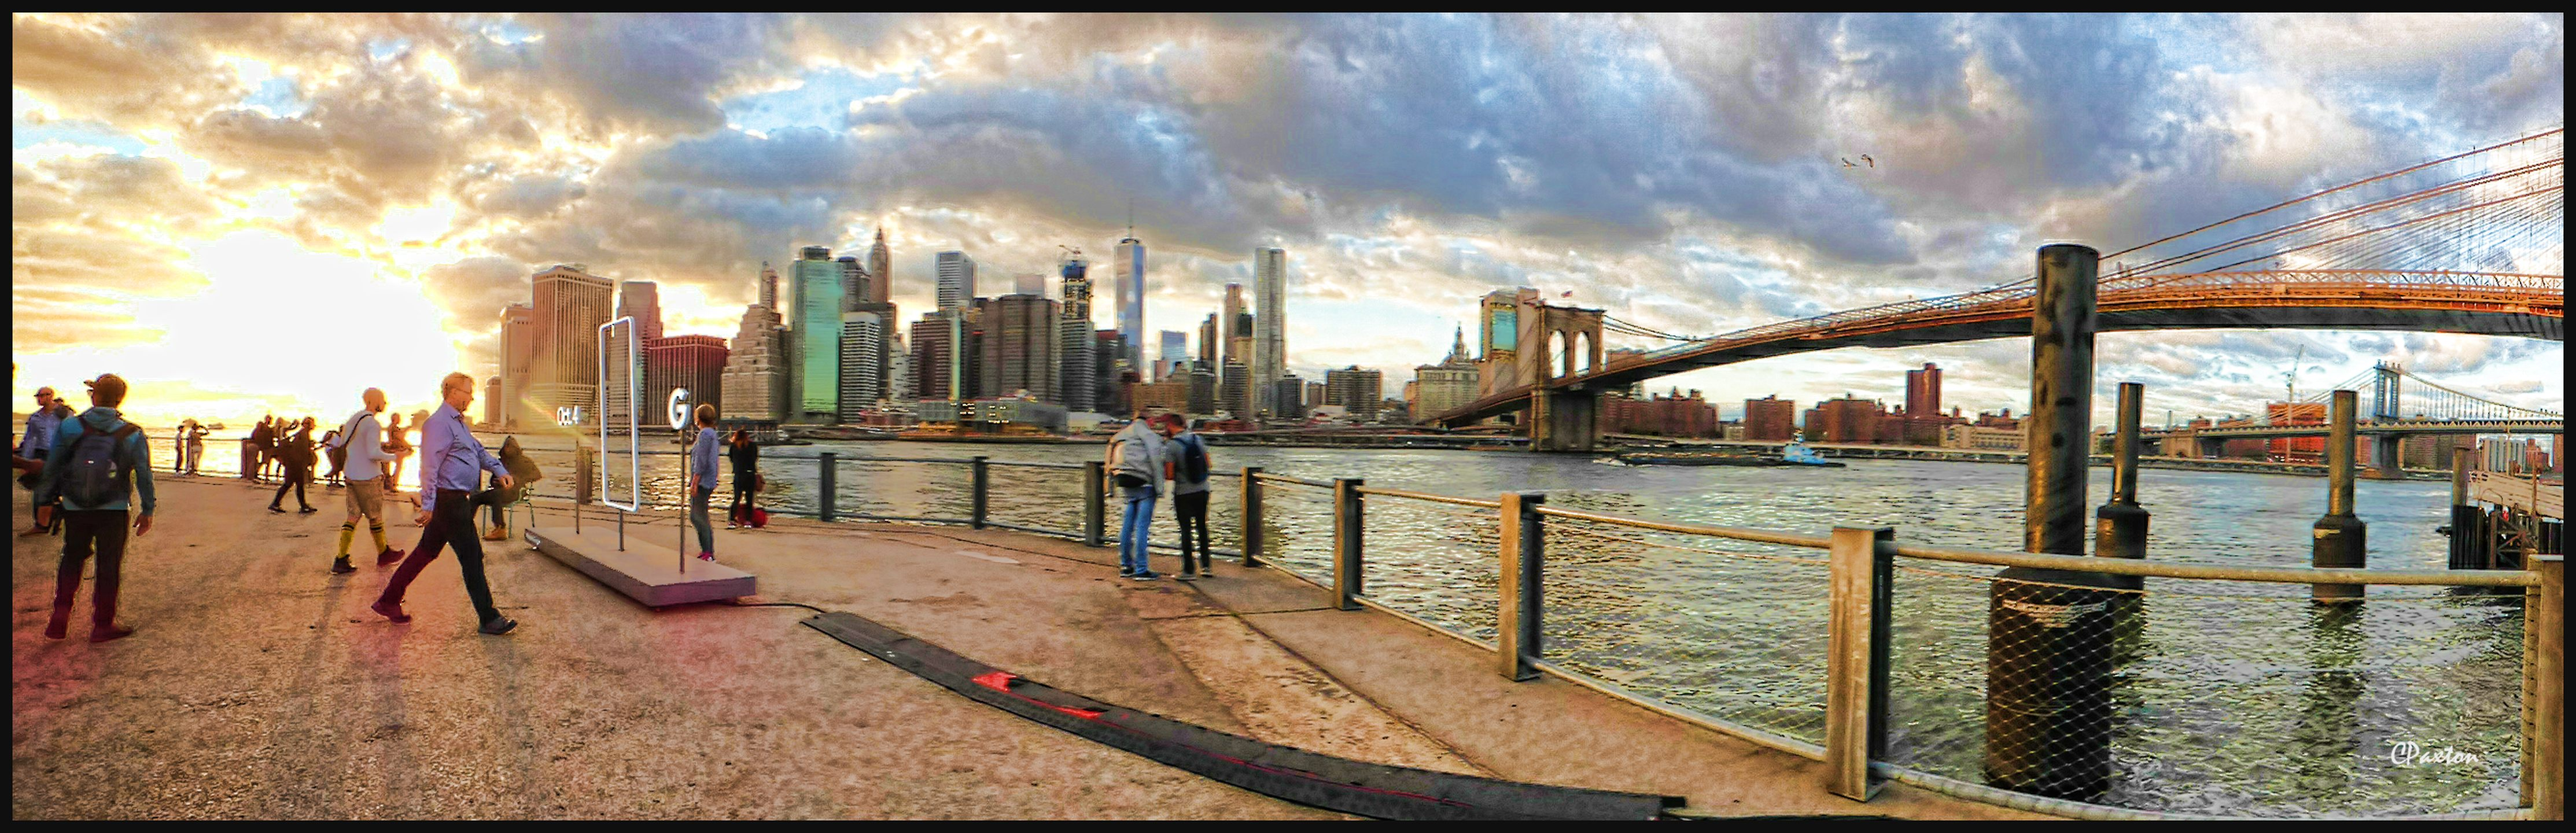 New York's Manhattan Island as viewed from Brooklyn Bridge Park